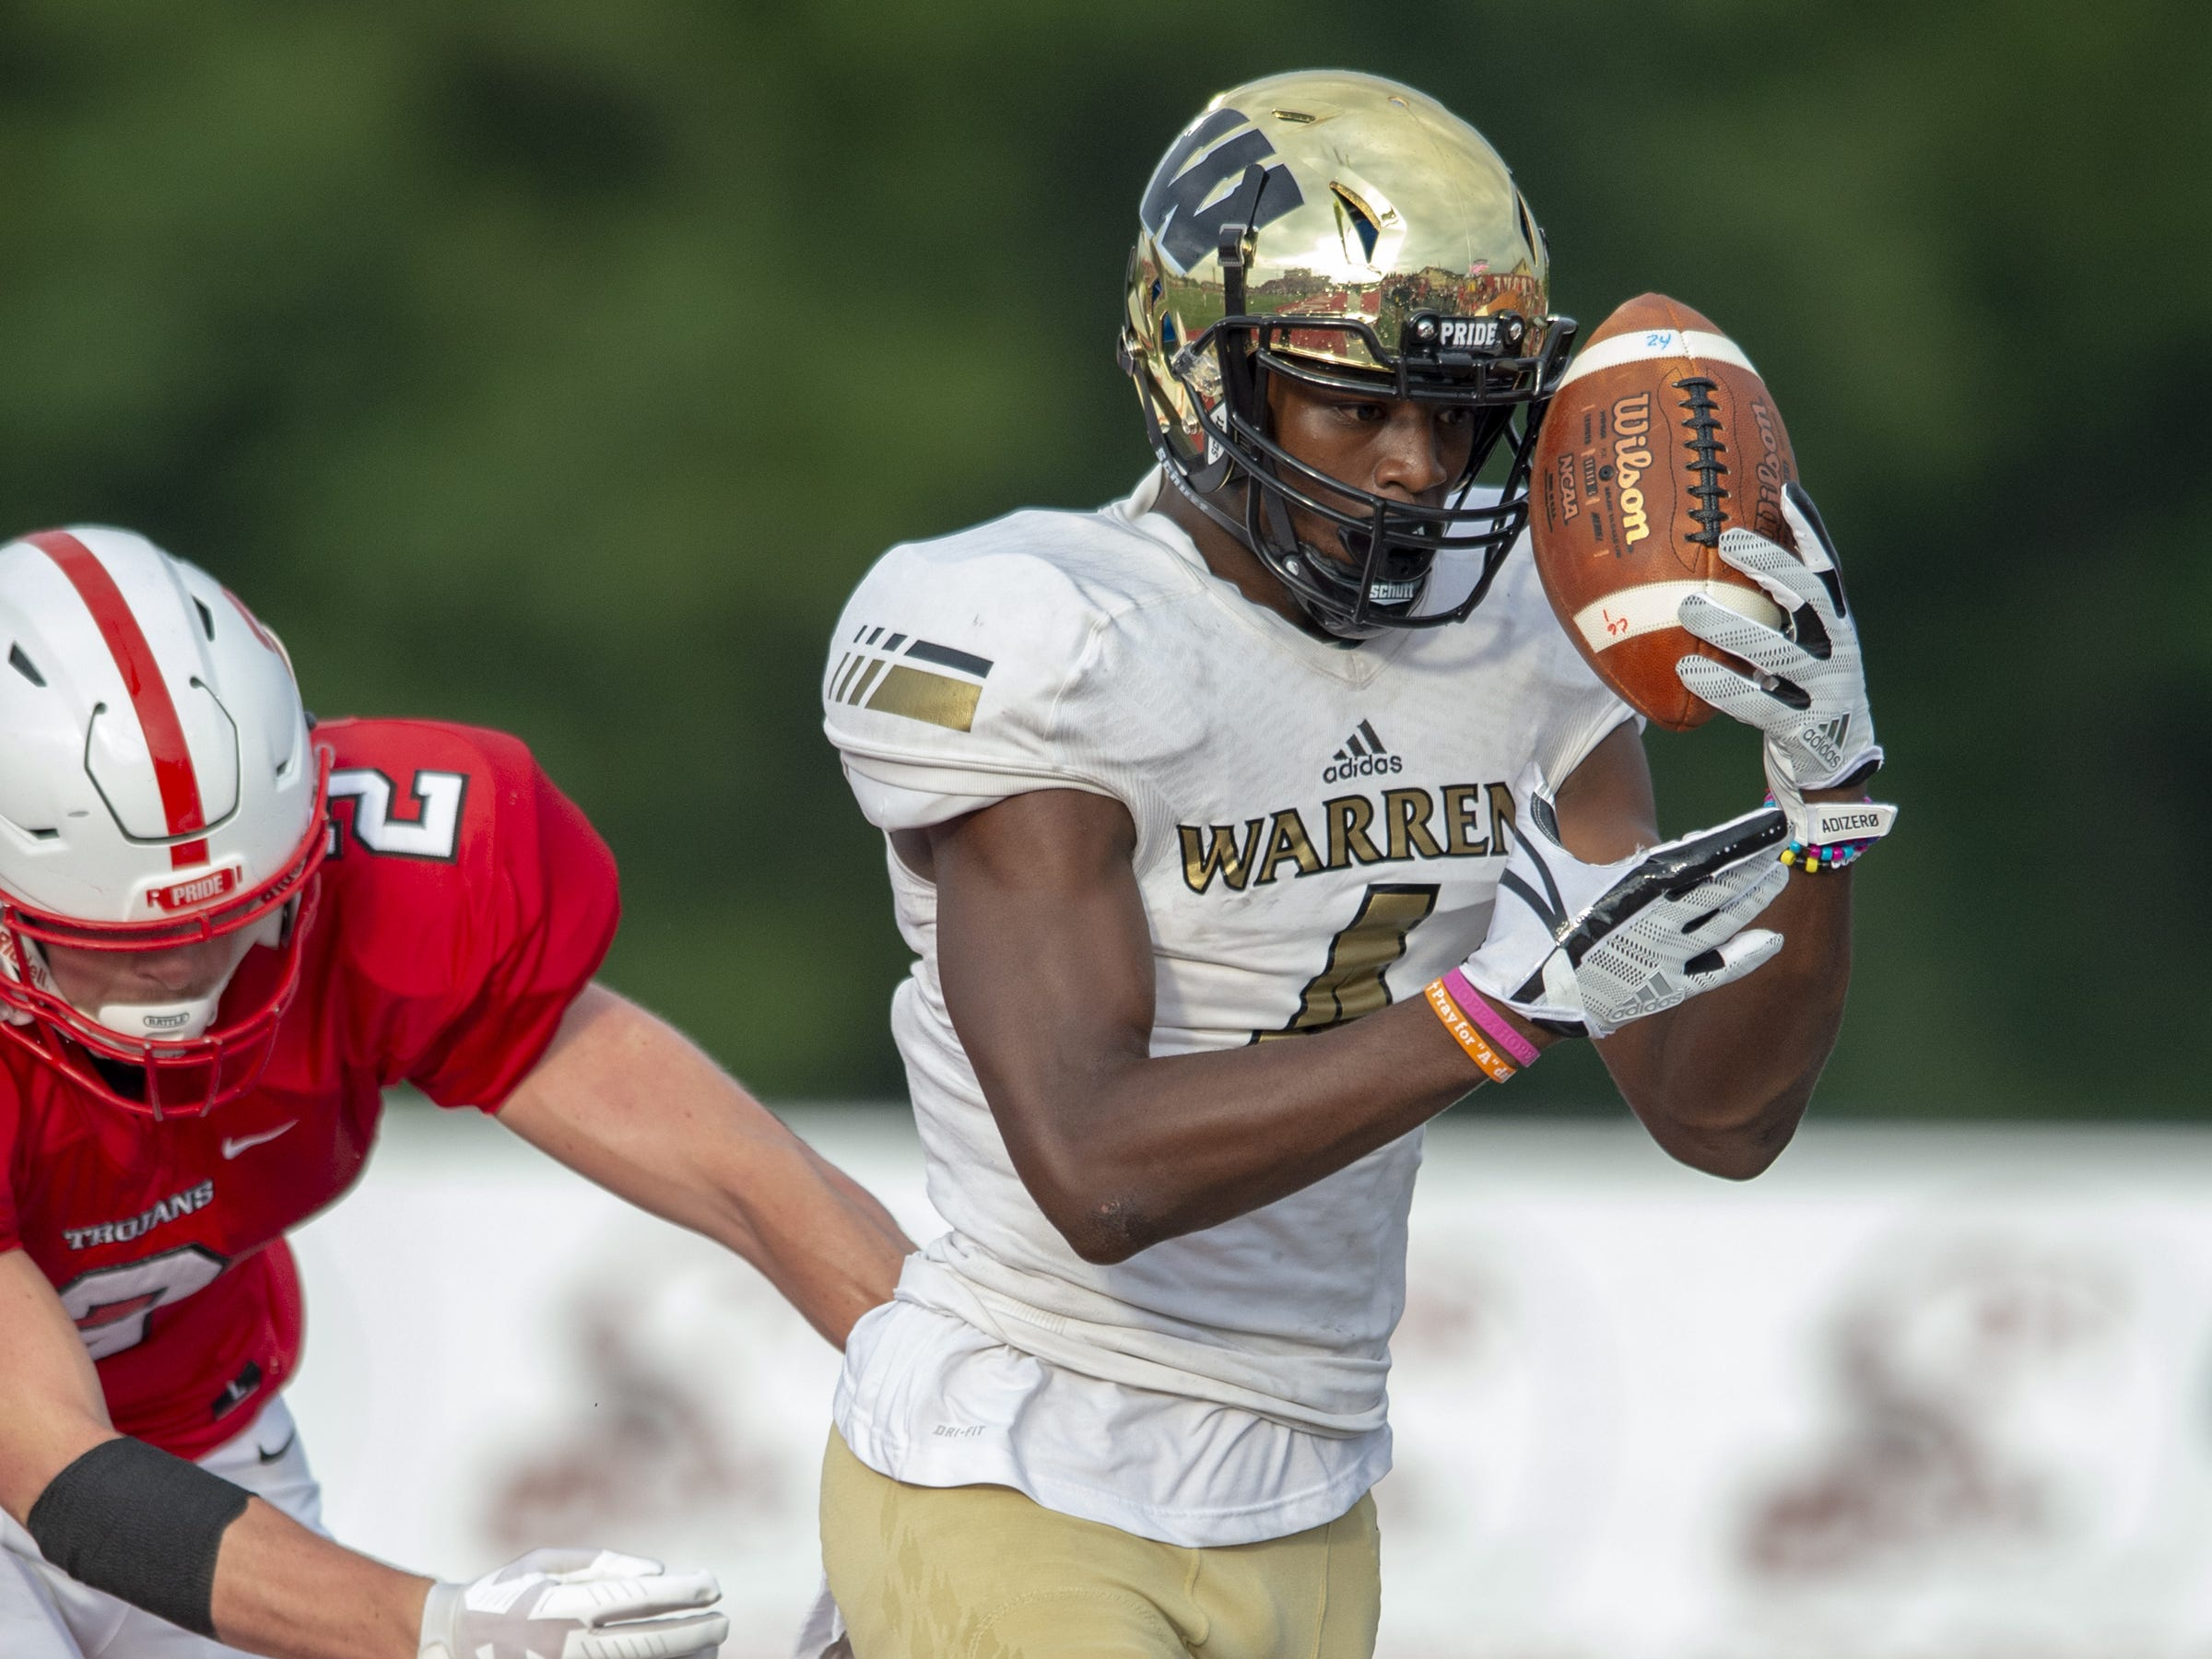 Warren Central High School senior David Bell (4) tries to gain control of the ball he intercepted in the back of the end zone before stepping out-of-bounds during the first half of action. Center Grove High School hosted Warren Central High School in IHSAA varsity football action, Friday, Aug. 17, 2018.